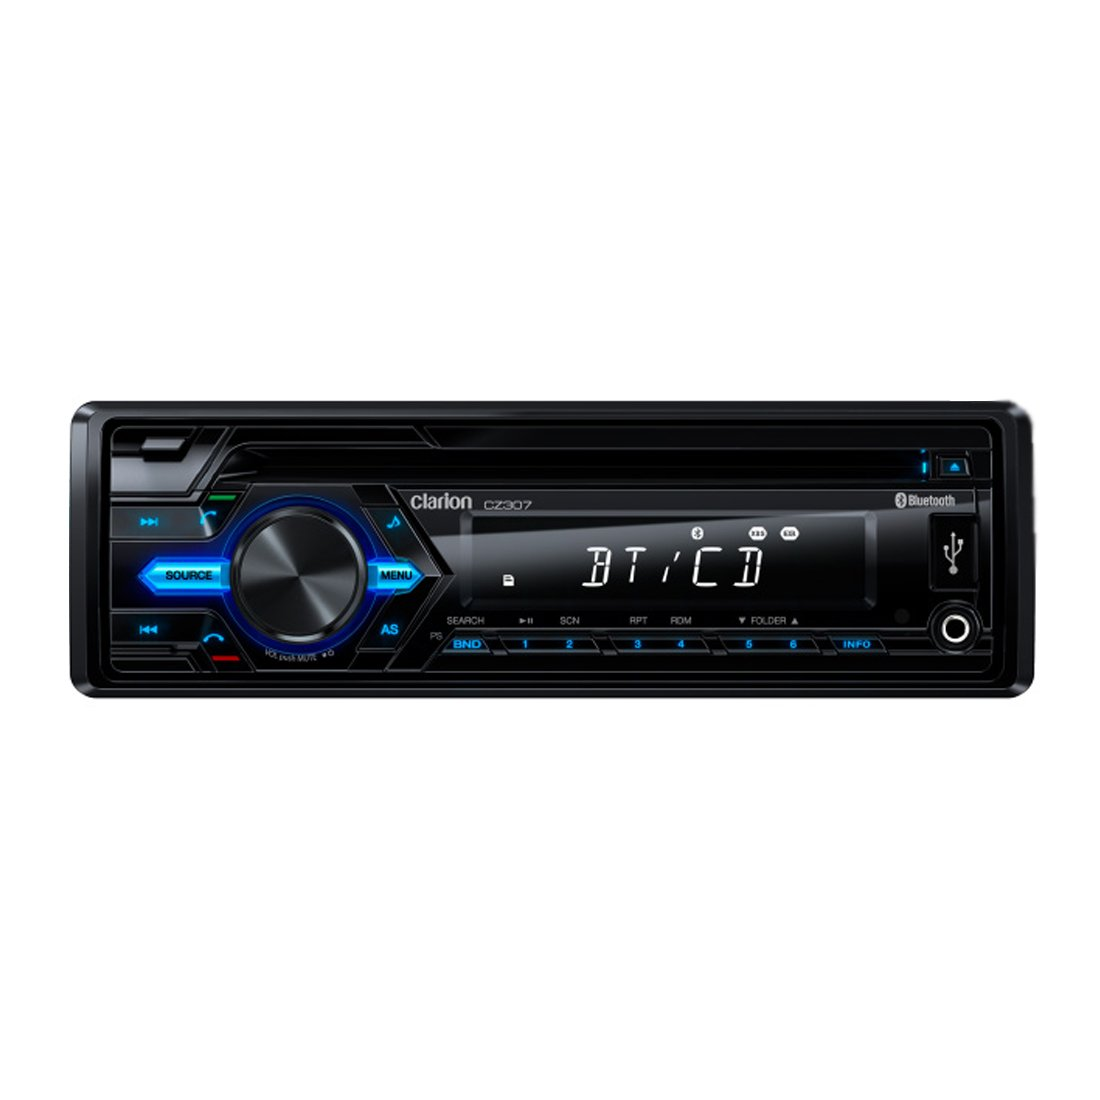 Clarion CZ307 CD / USB / AUX-IN / SD / MP3 / WMA Receiver With Built-in Bluetooth